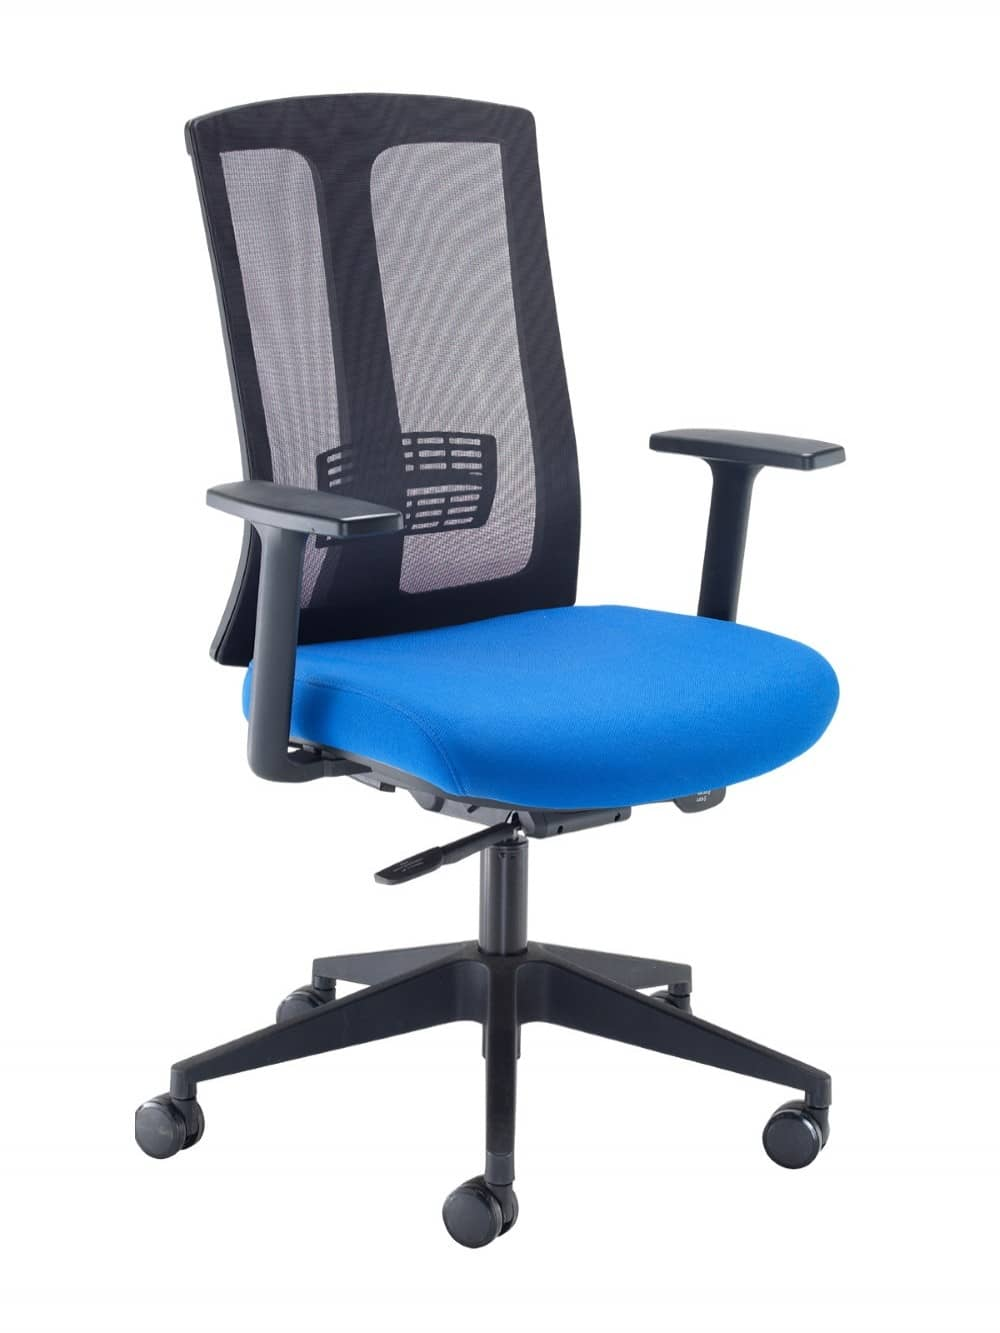 QWubd7ah_ronan-office-chair-ron300t1-b-001